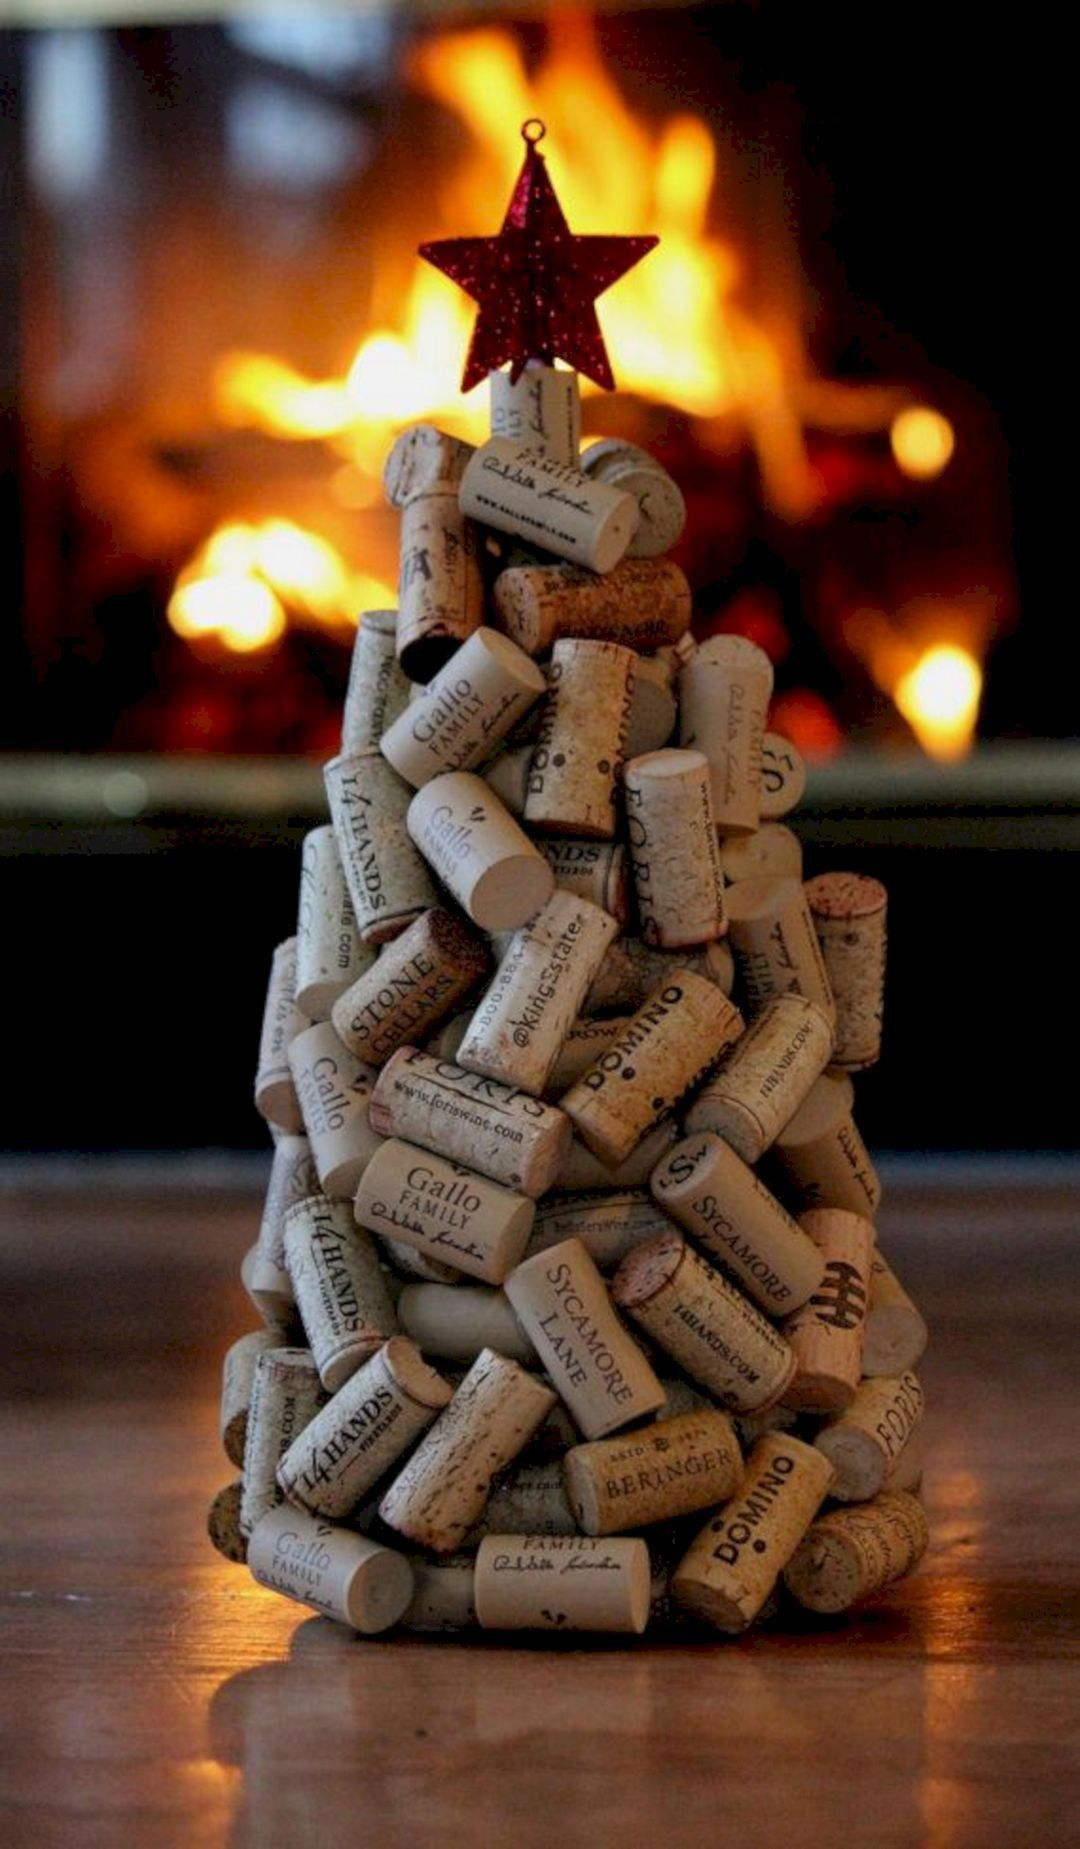 Best Wine Cork Ideas For Home Decorations 1020102